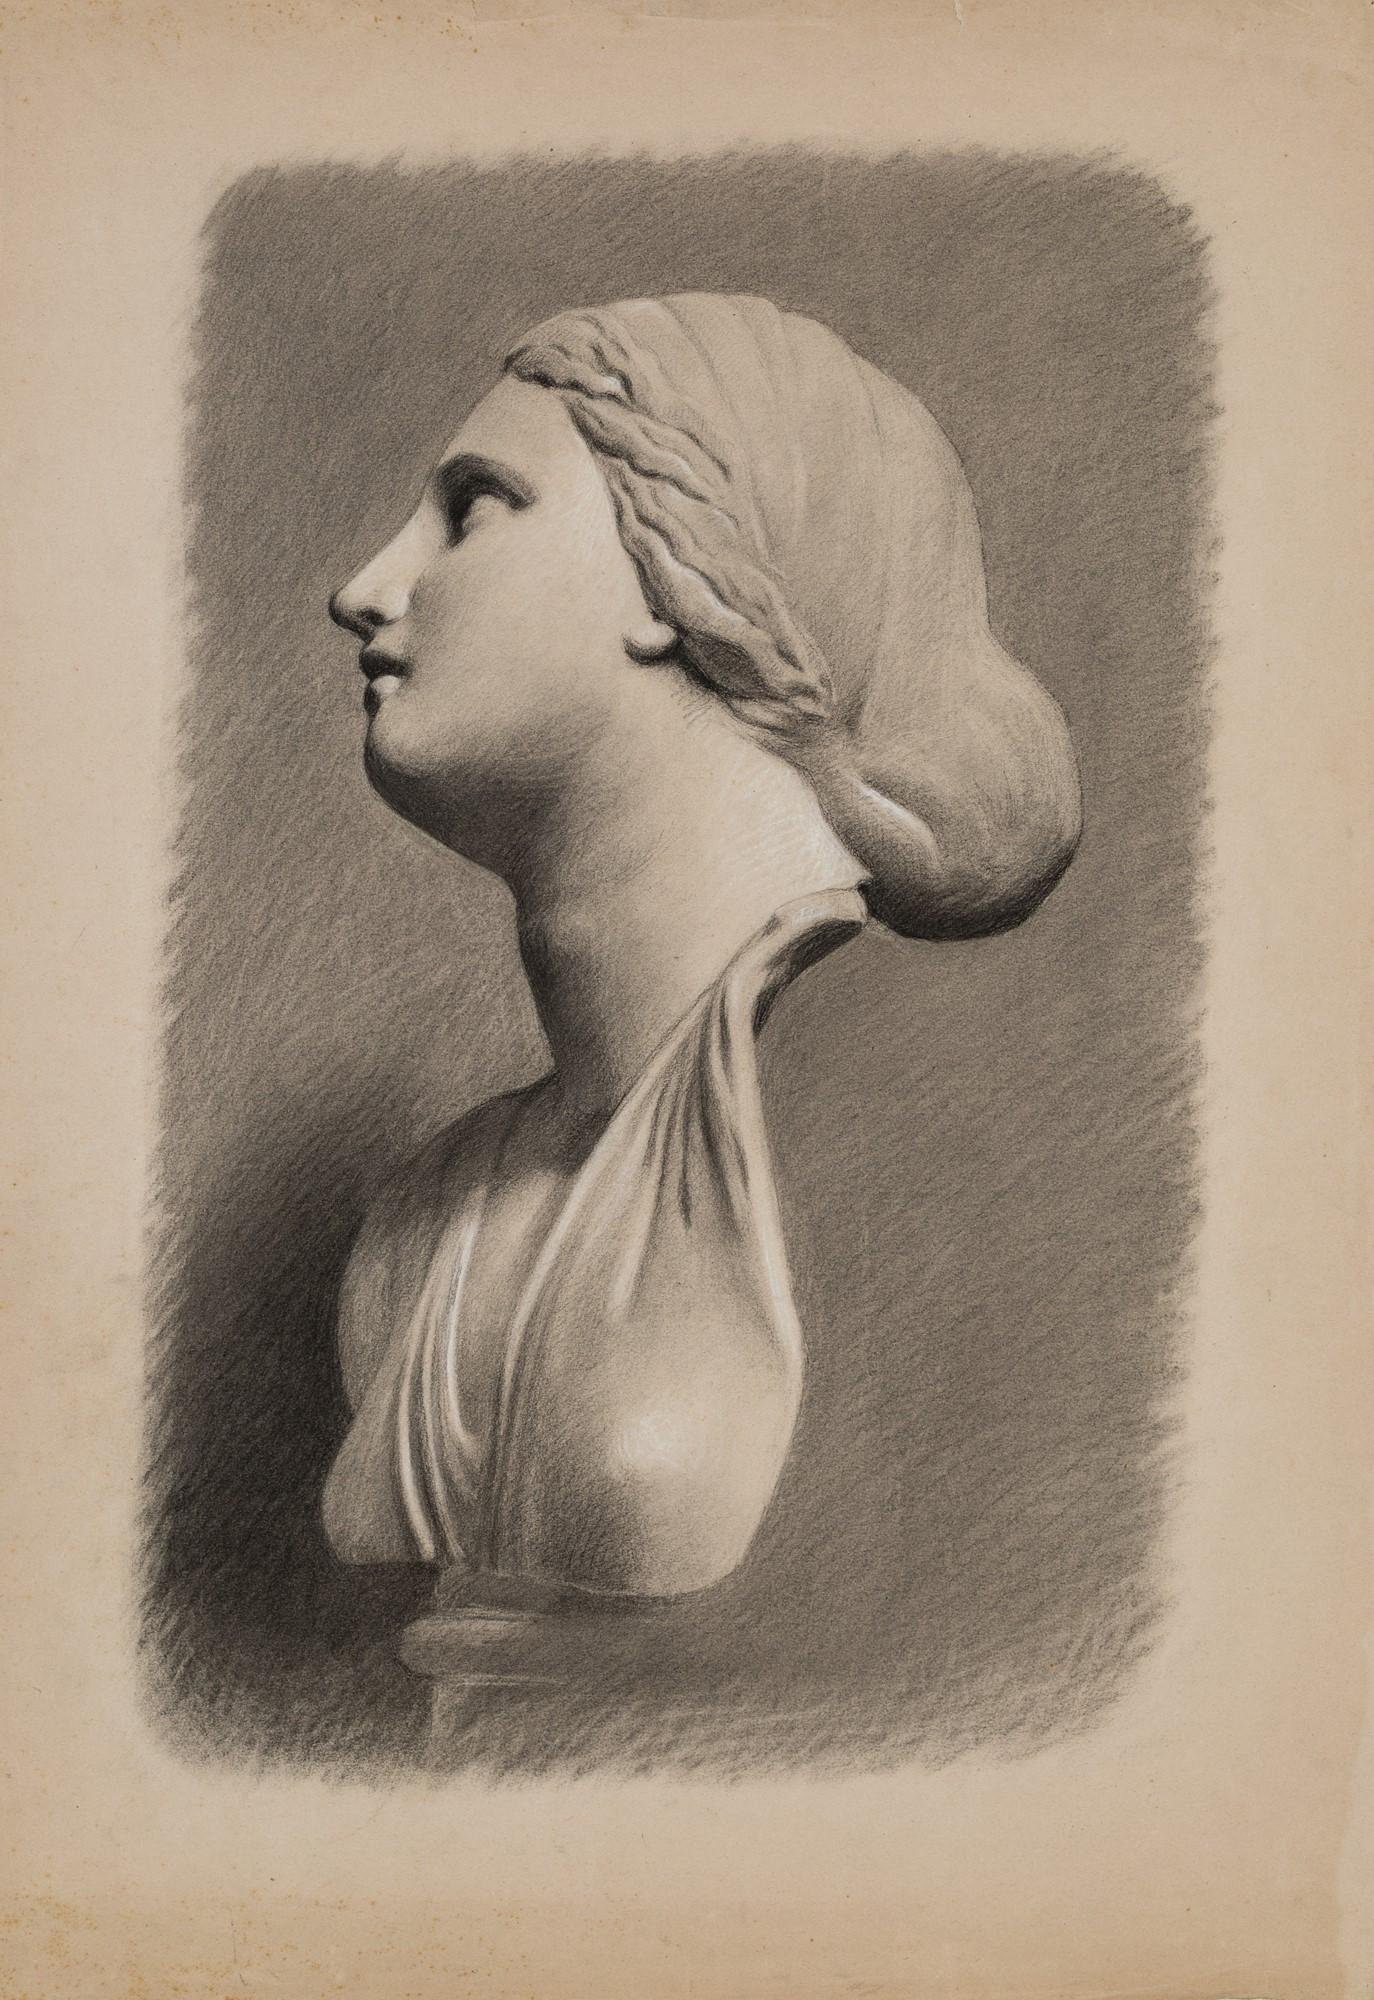 Six drawings depicting marble busts from ancient times